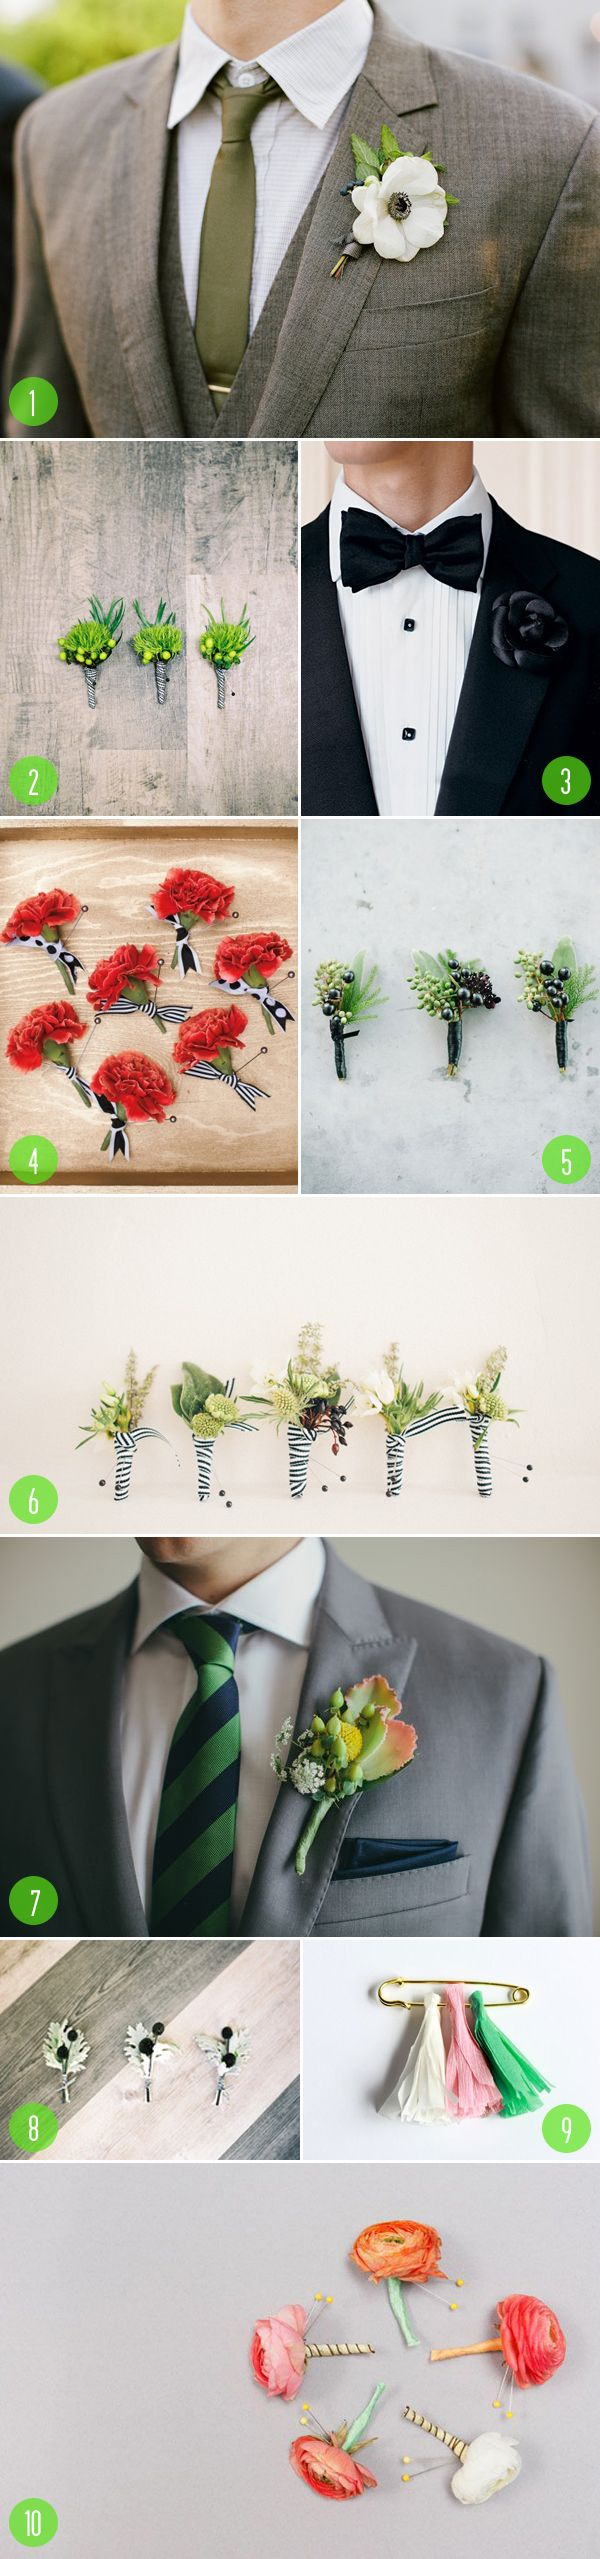 Top 10: Boutonnieres | We choose #7!: Boutonnieres Suits, Grooms Suits, Tops 10, Awesome Ideas, Wedding Flowers, Boutonnieres Awesome, Stuff Ideas, Gardens Parties, Grooms Inspiration